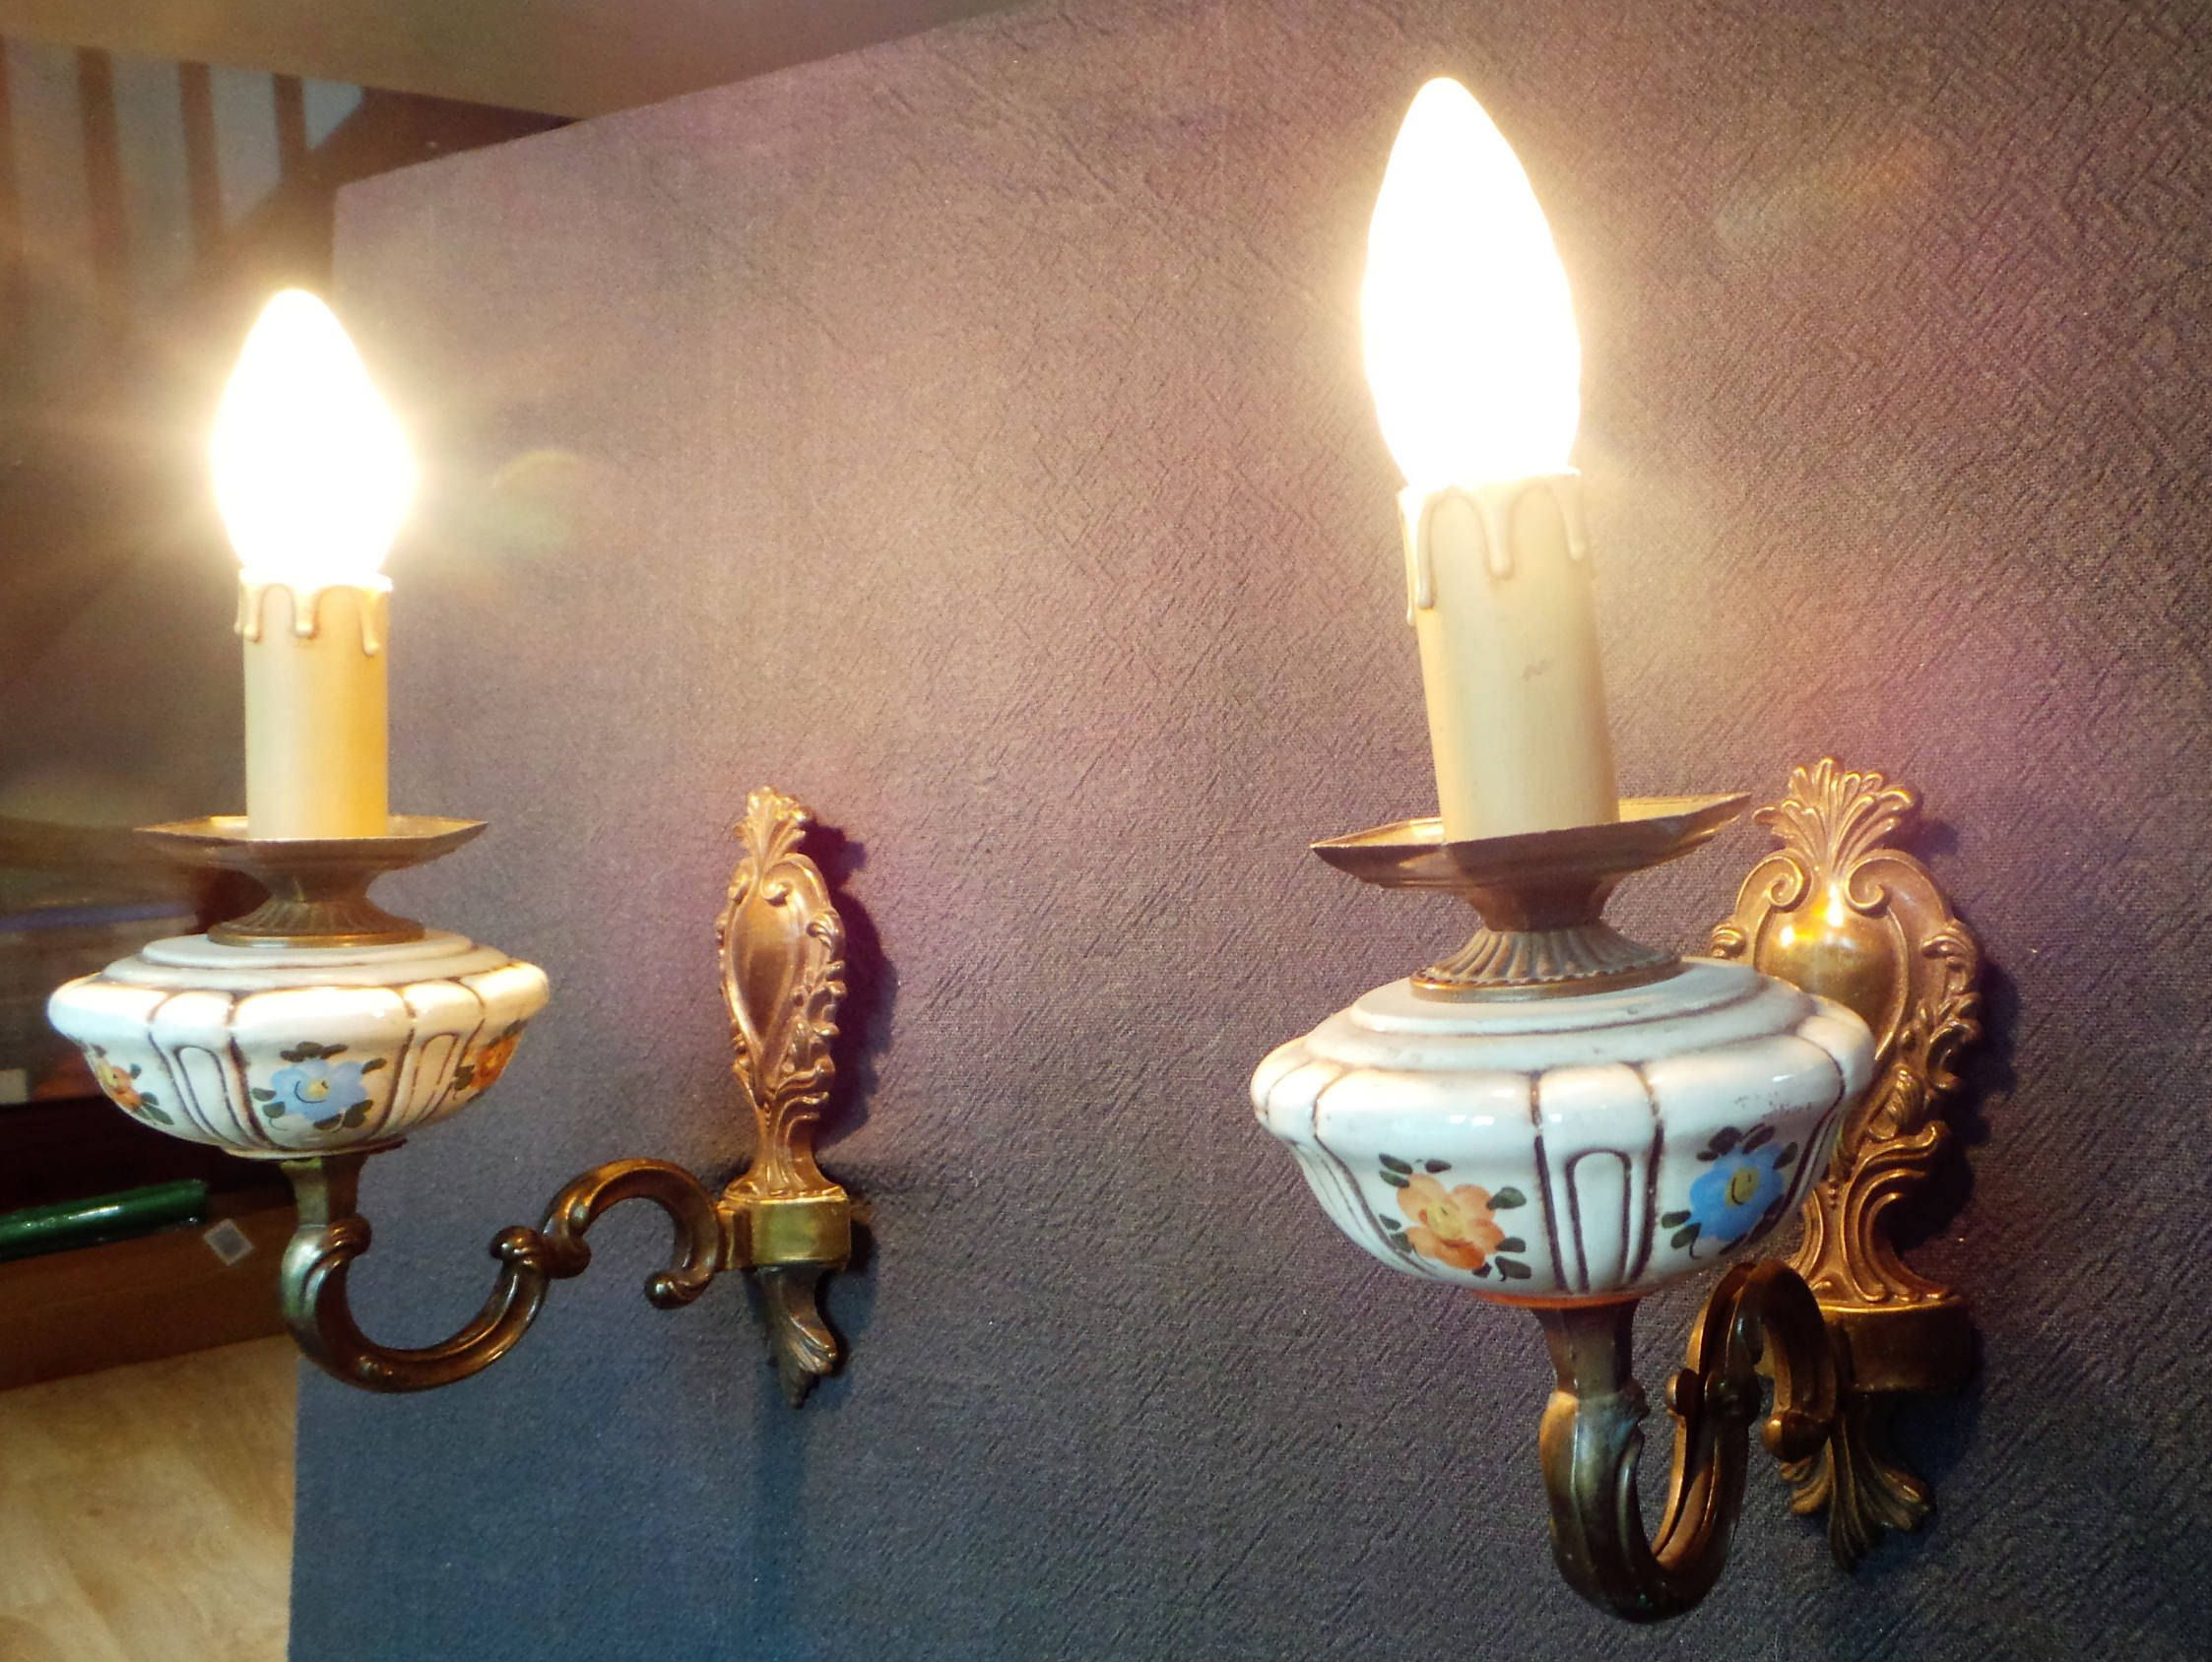 Wall Chandeliers Pair Vintage French Bronze Country Style Light Fittings Set Of Two Ceramic And